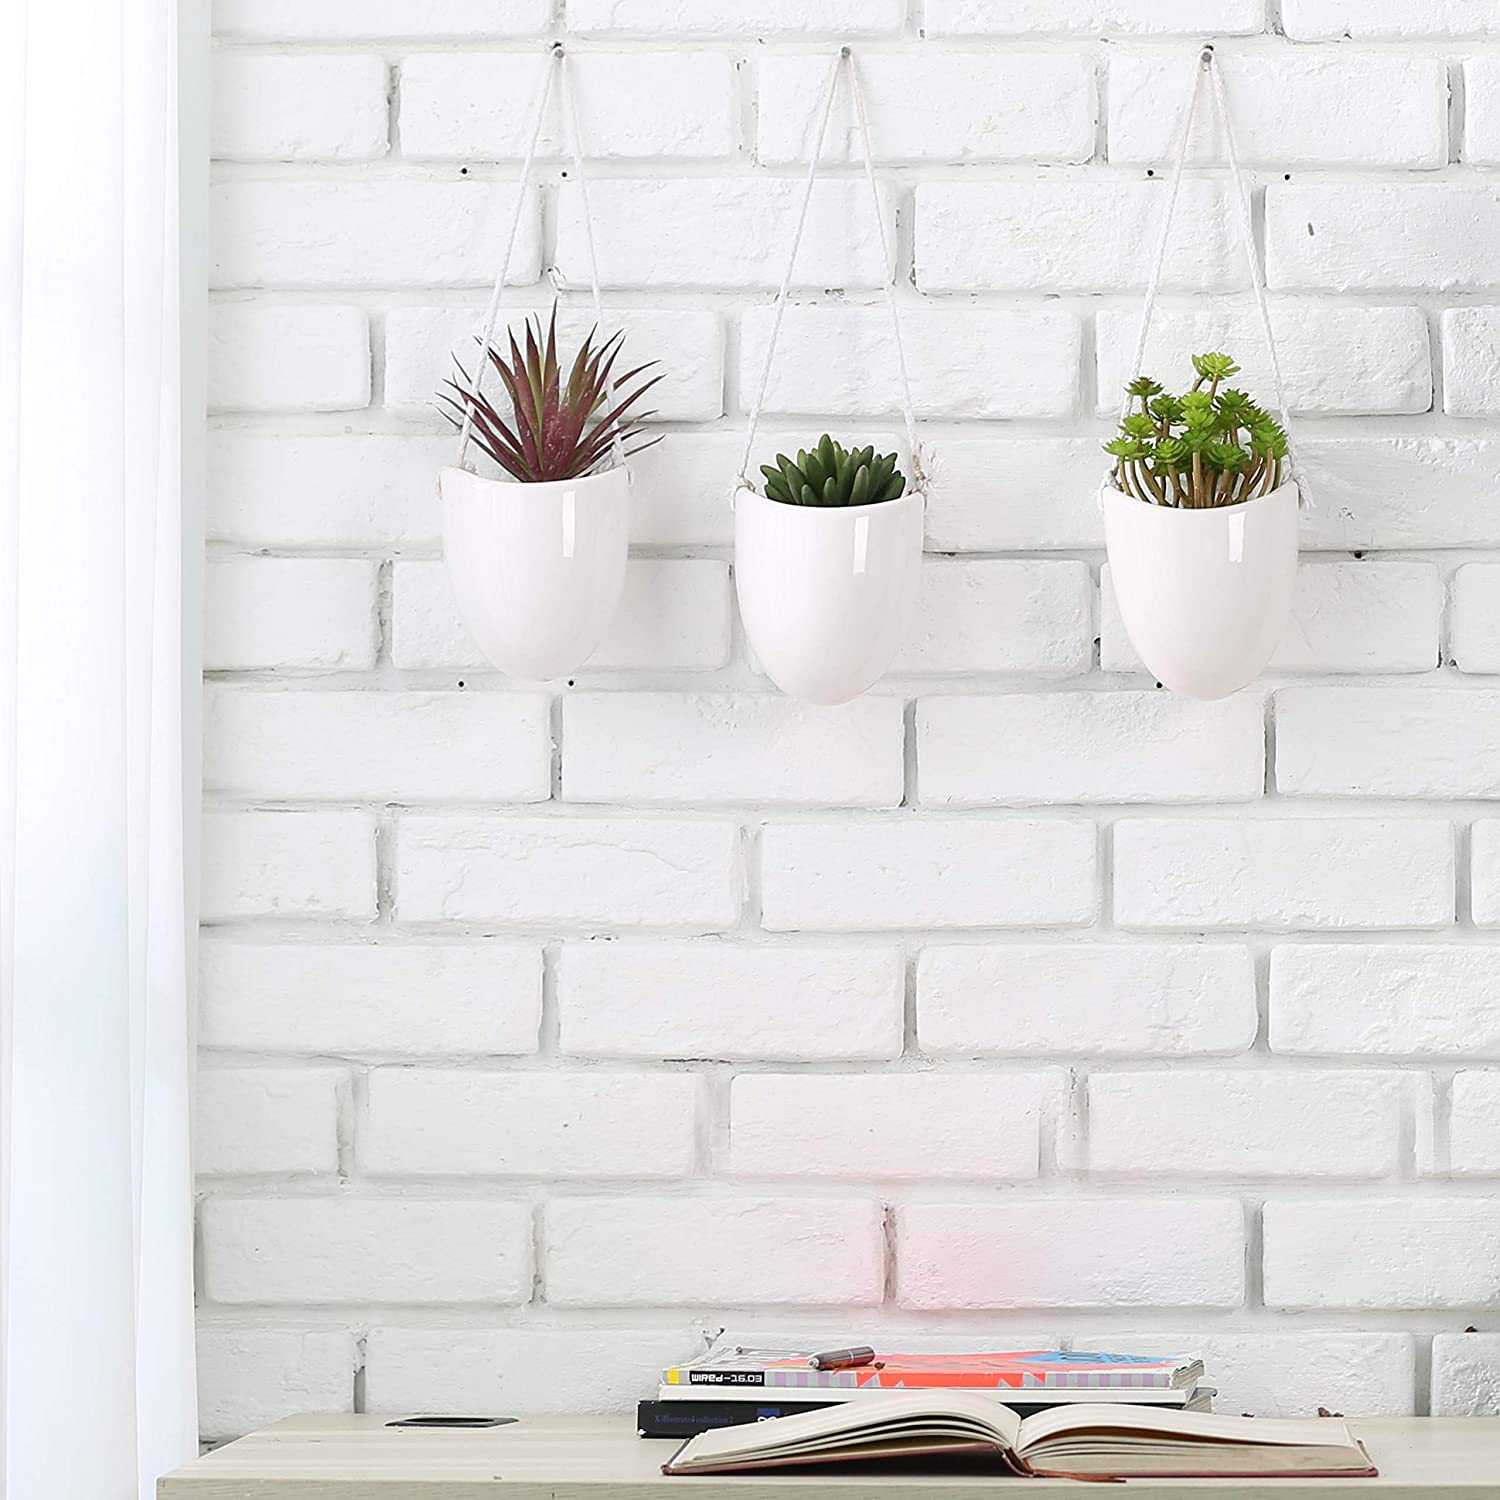 MyGift Set of 6 White Ceramic Wall-Hanging 5-Inch Planters